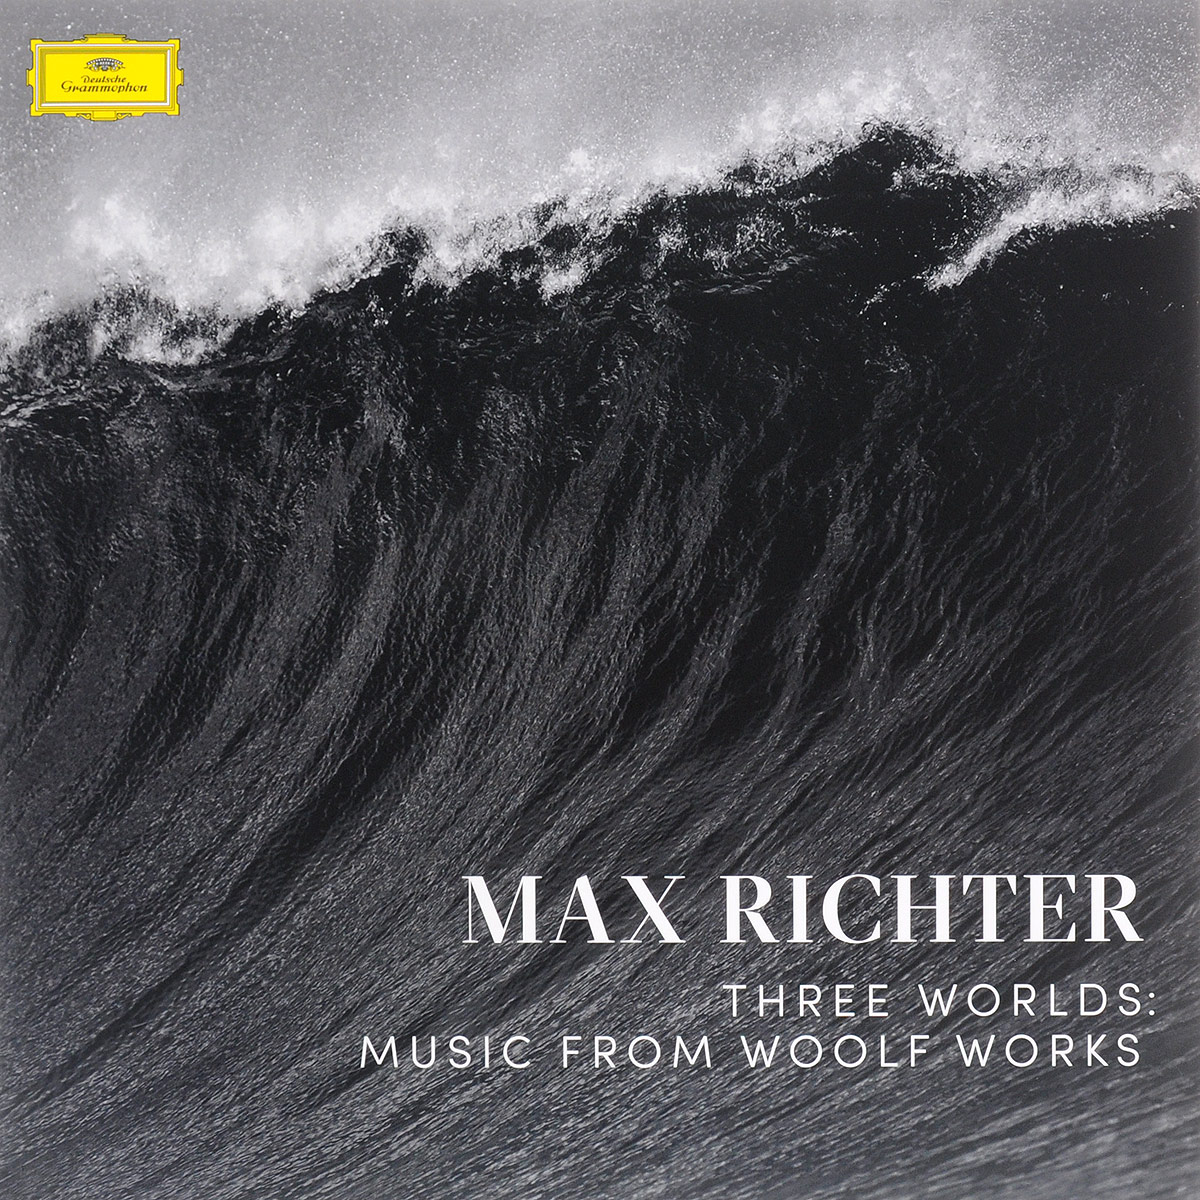 Макс Рихтер Max Richter. Three Worlds. Music From Woolf Works (2 LP) песни г вольфа д фишер дискау с рихтер lp